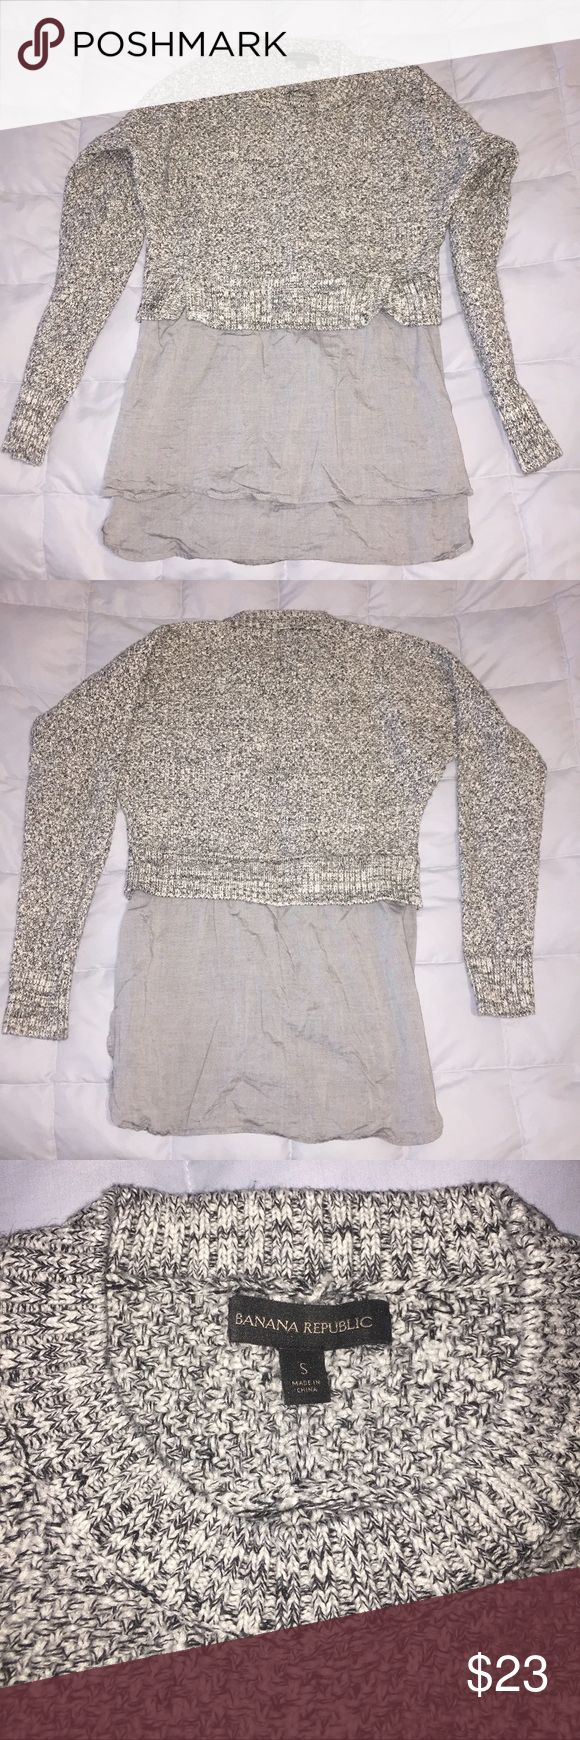 Banana Republic Shirttail Sweater Tunic Size small, roomy fit Like new condition, worn gently a handful of times Very soft & looks awesome with leggings!  From winter 2014/2015 - purchased from banana republic in the mall.   All my items are from a smoke free home. Banana Republic Tops Tunics